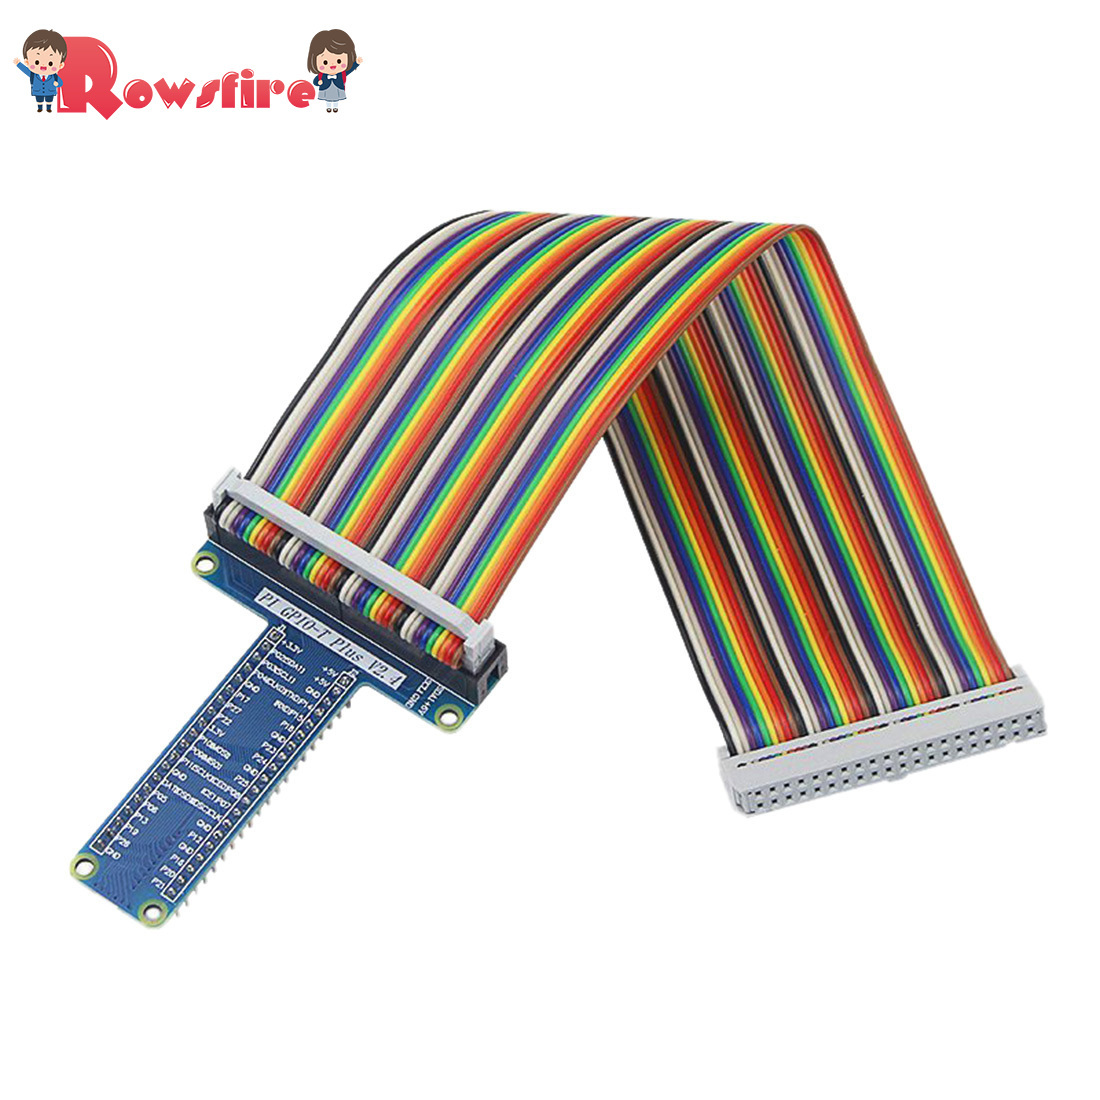 T Shape Expansion Board And Rainbow Cable For Raspberry Pi 3B+/3B/2B GPIO